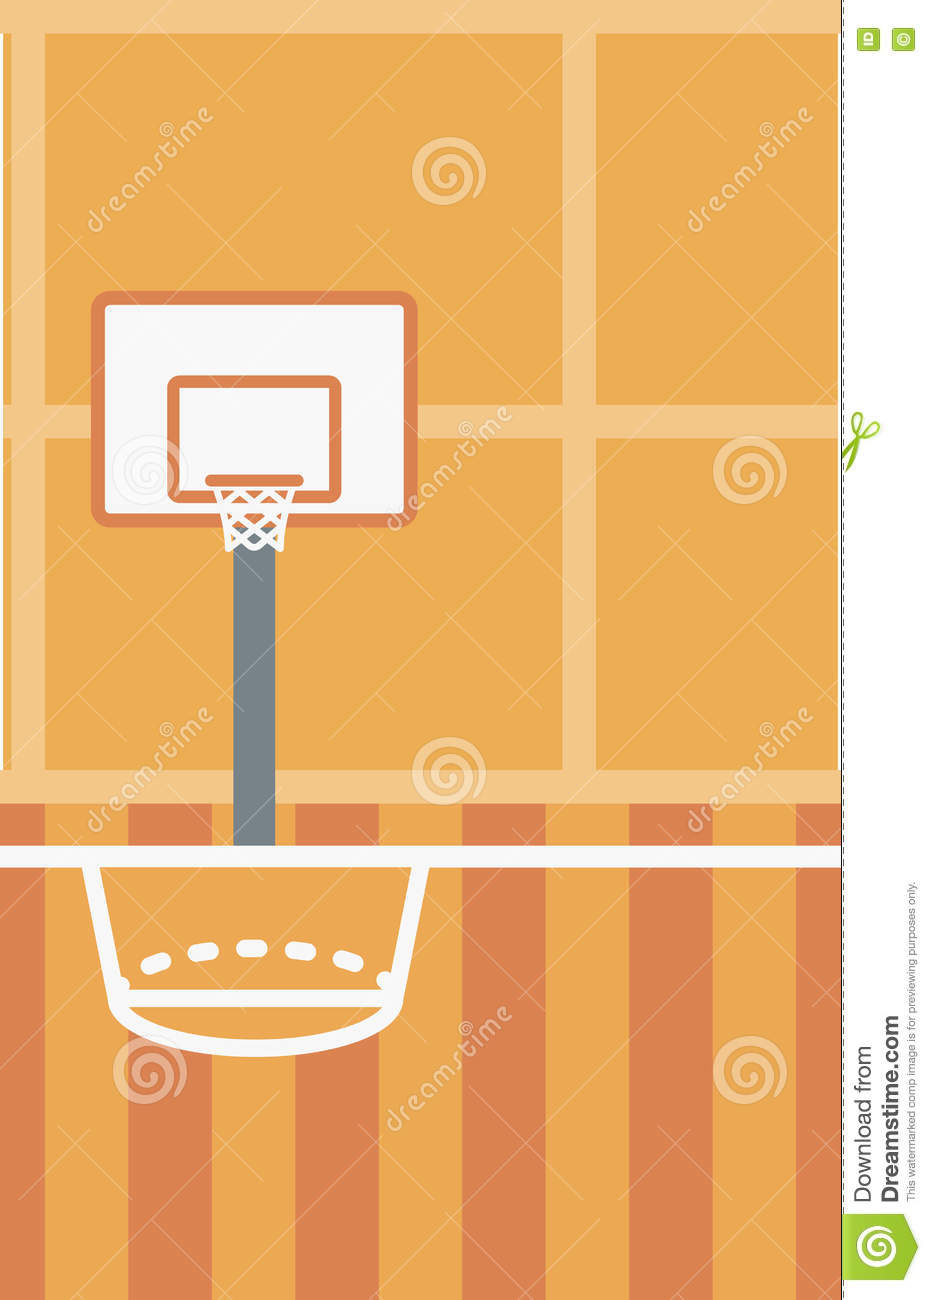 Background Of Basketball Court Stock Vector Illustration Of Building Competition 72669558